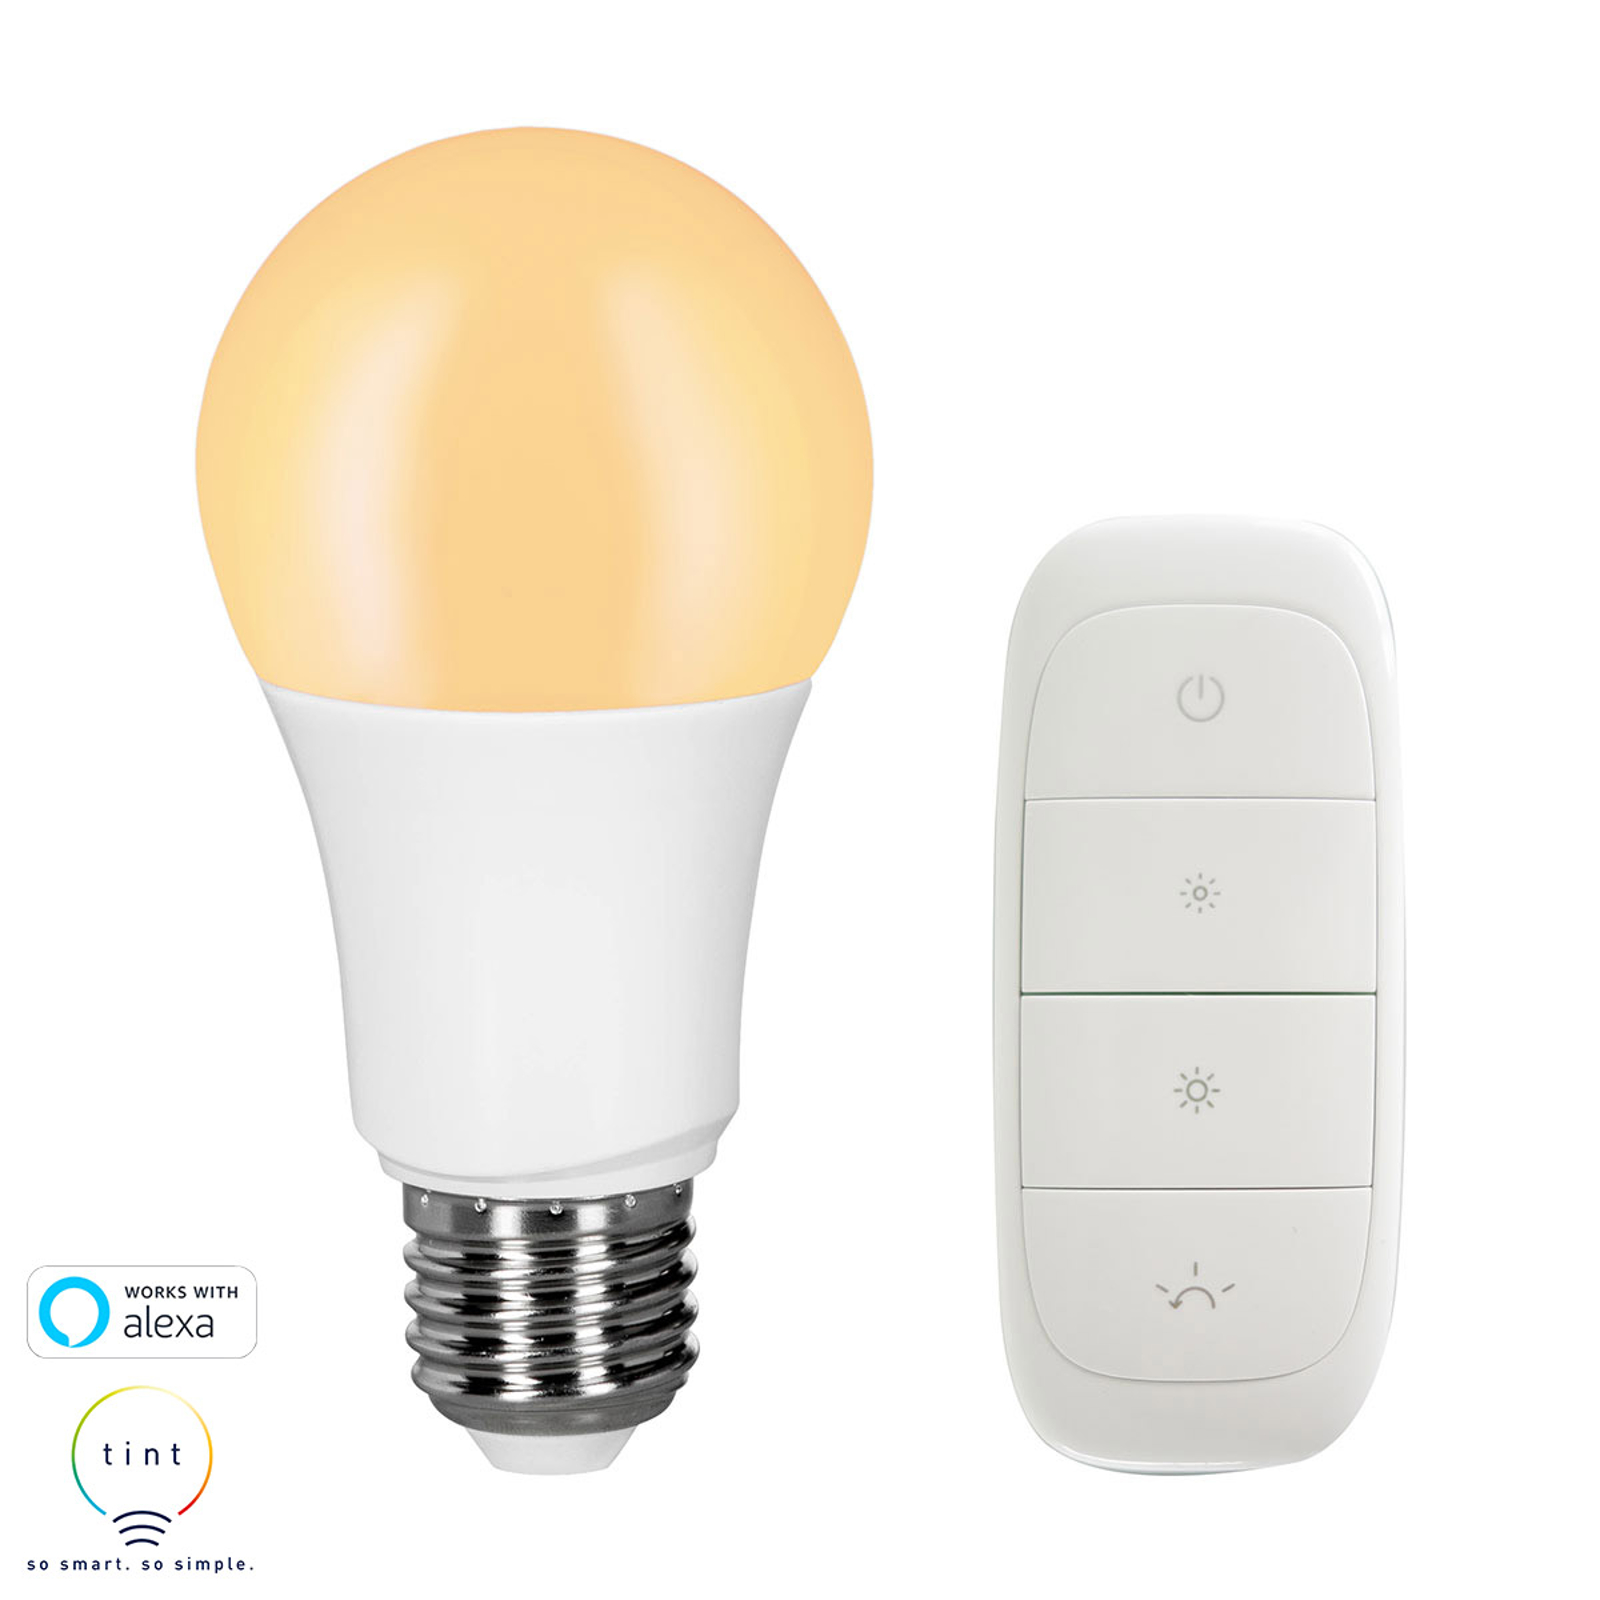 Müller Licht tint dimming LED-Lampe E27 9W+Dimmer